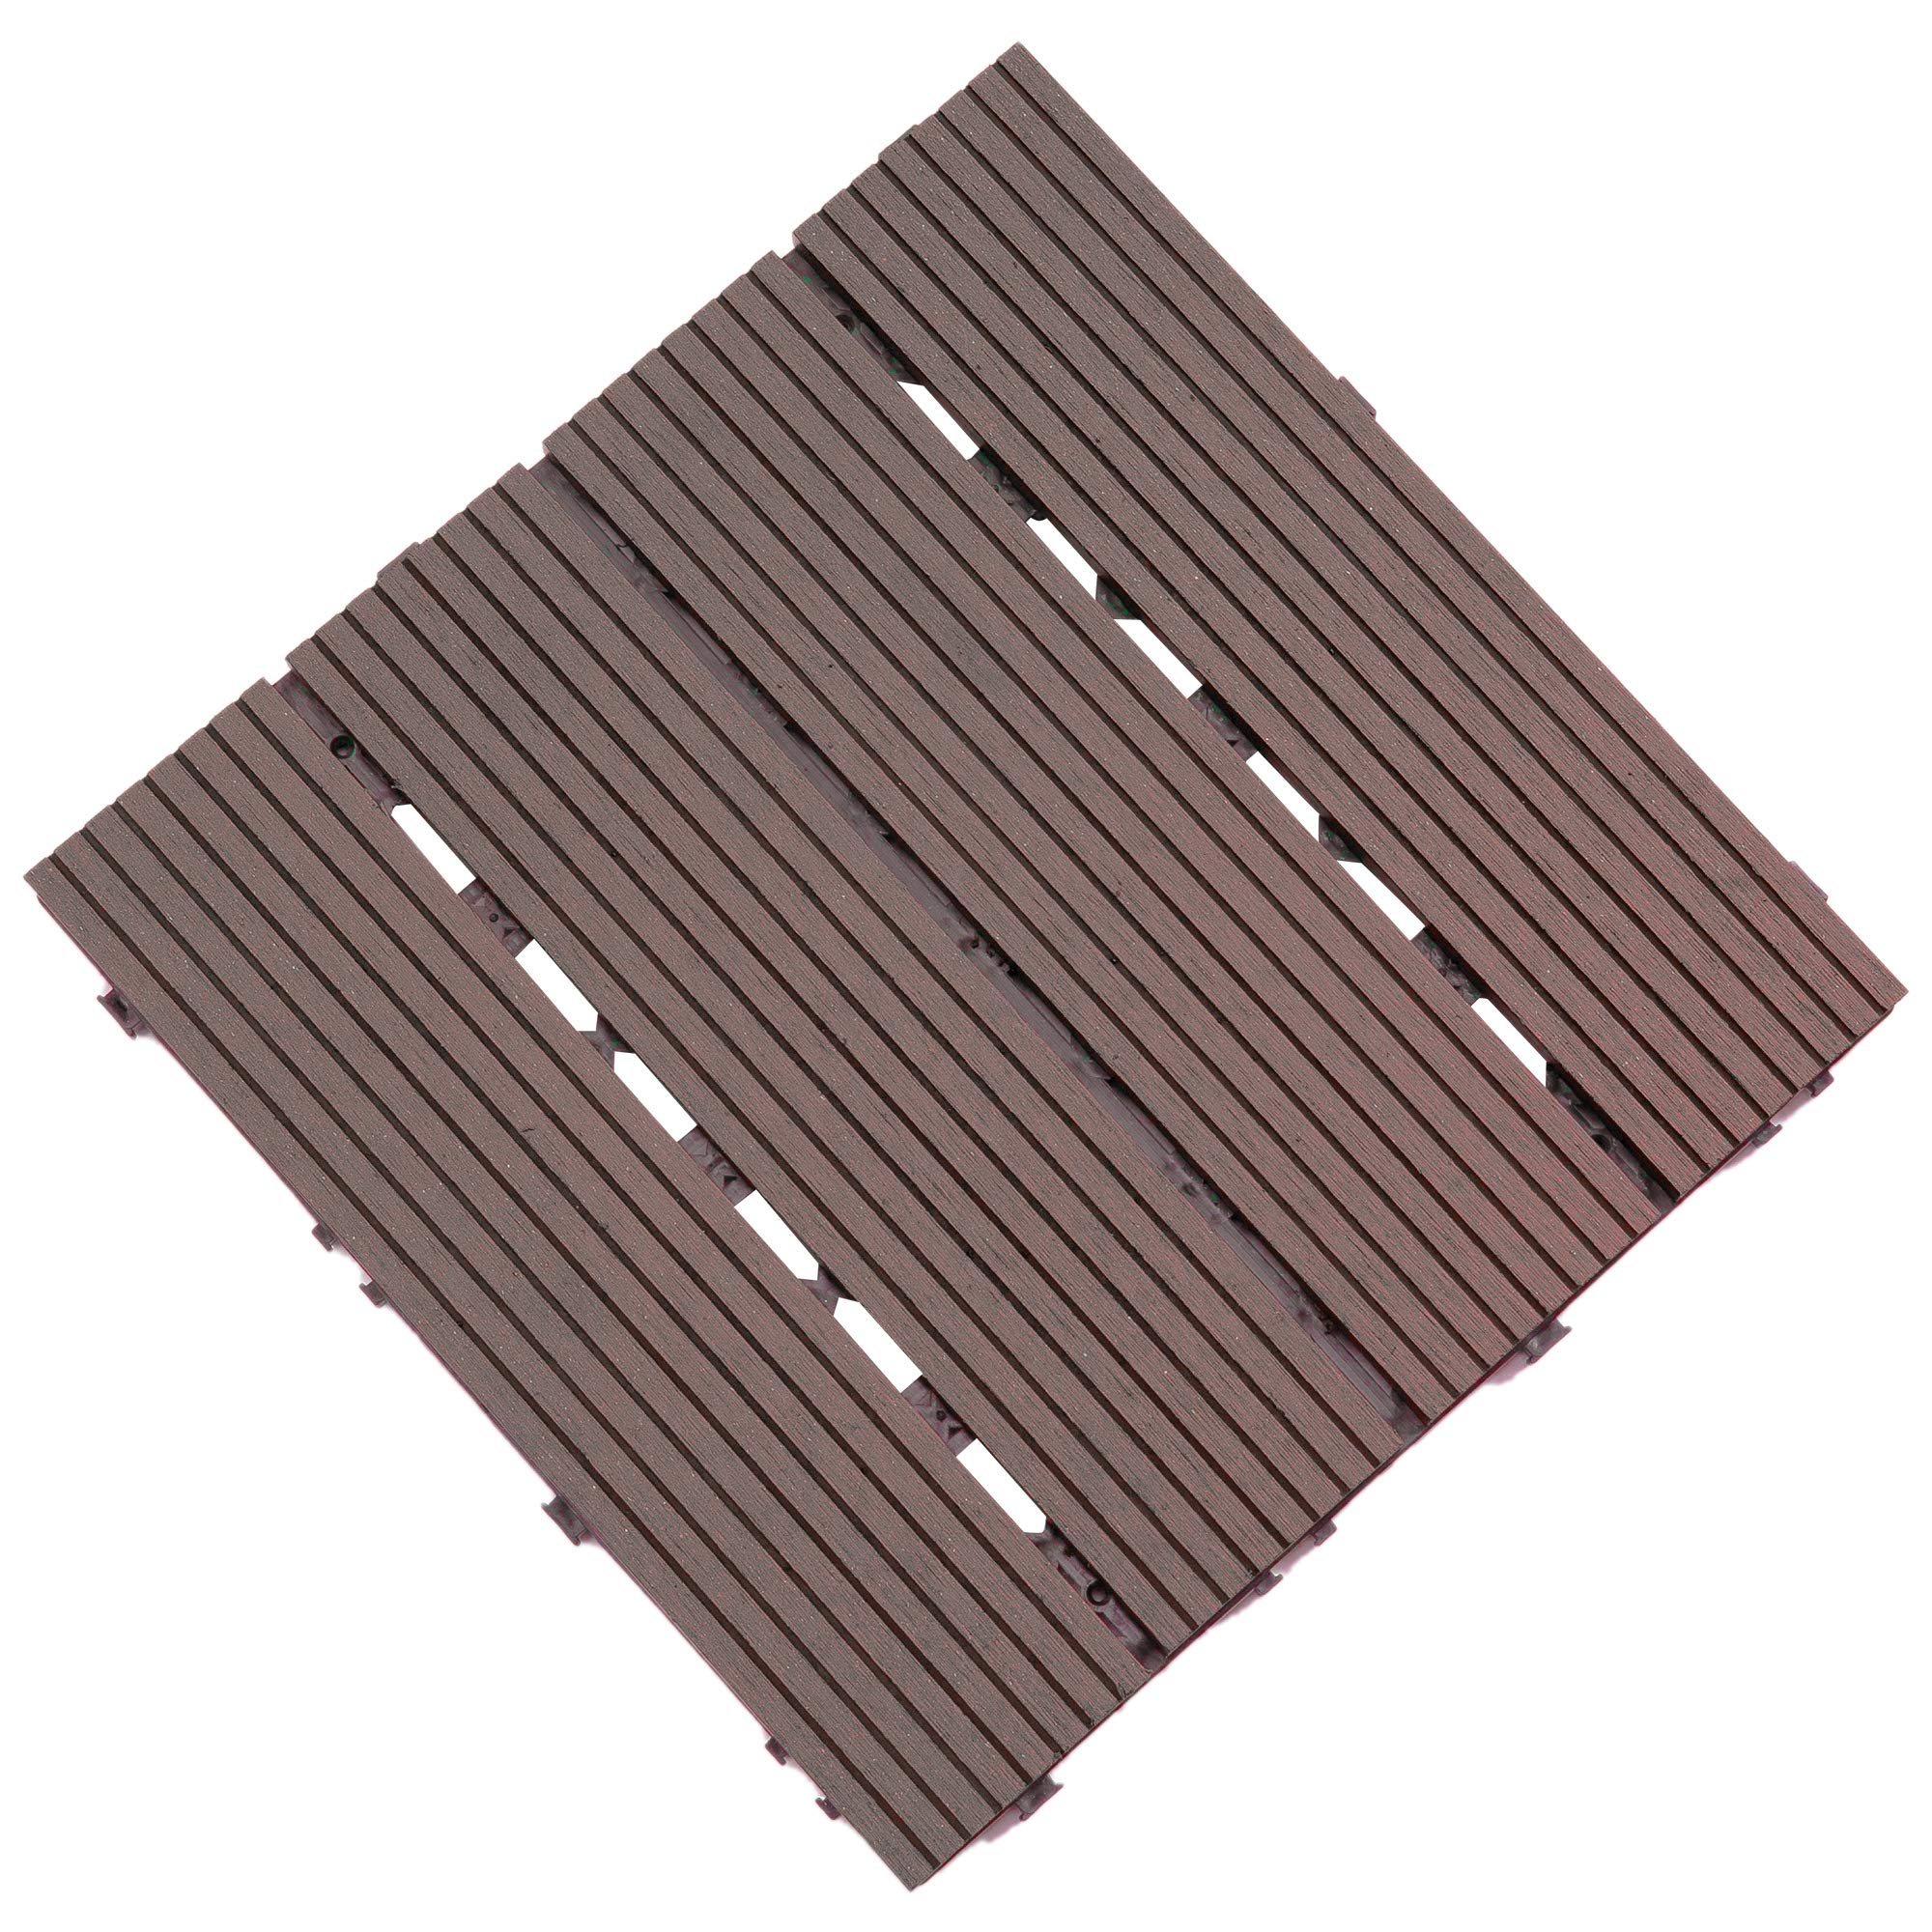 Samincom Patio Outdoor Four Slat Wood-Plastic Composite Interlocking Decking Tile, Water Resistant Flooring Tiles Indoor Outdoor, 12''× 12'', Pack of 11 (11 sq.ft) Coffee by Samincom